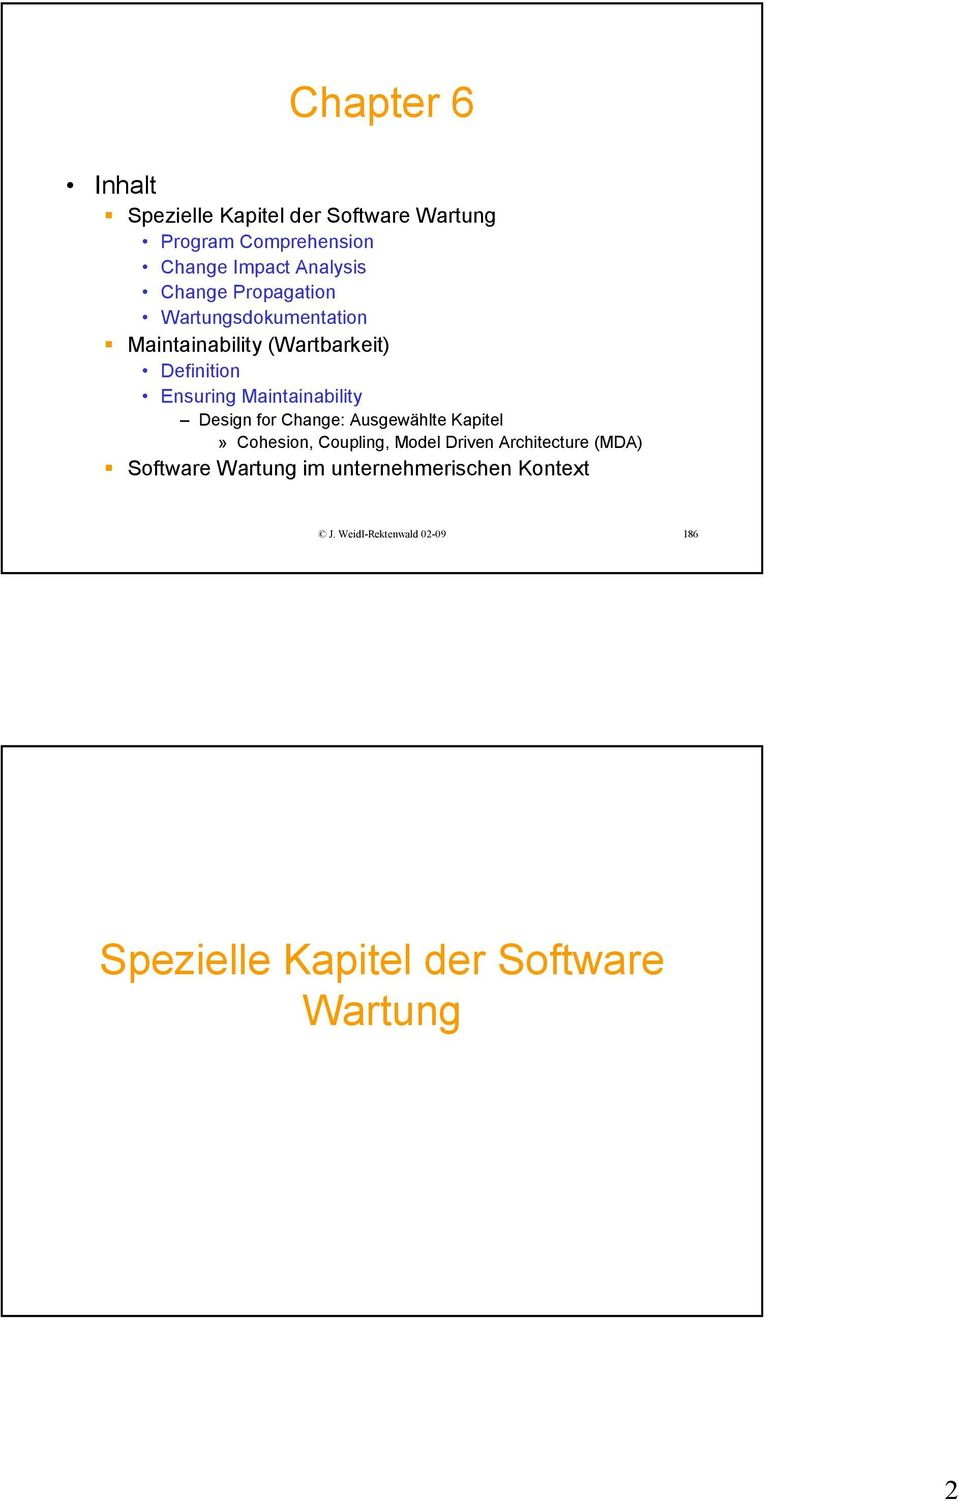 Maintainability Design for Change: Ausgewählte Kapitel» Cohesion, Coupling, Model Driven Architecture